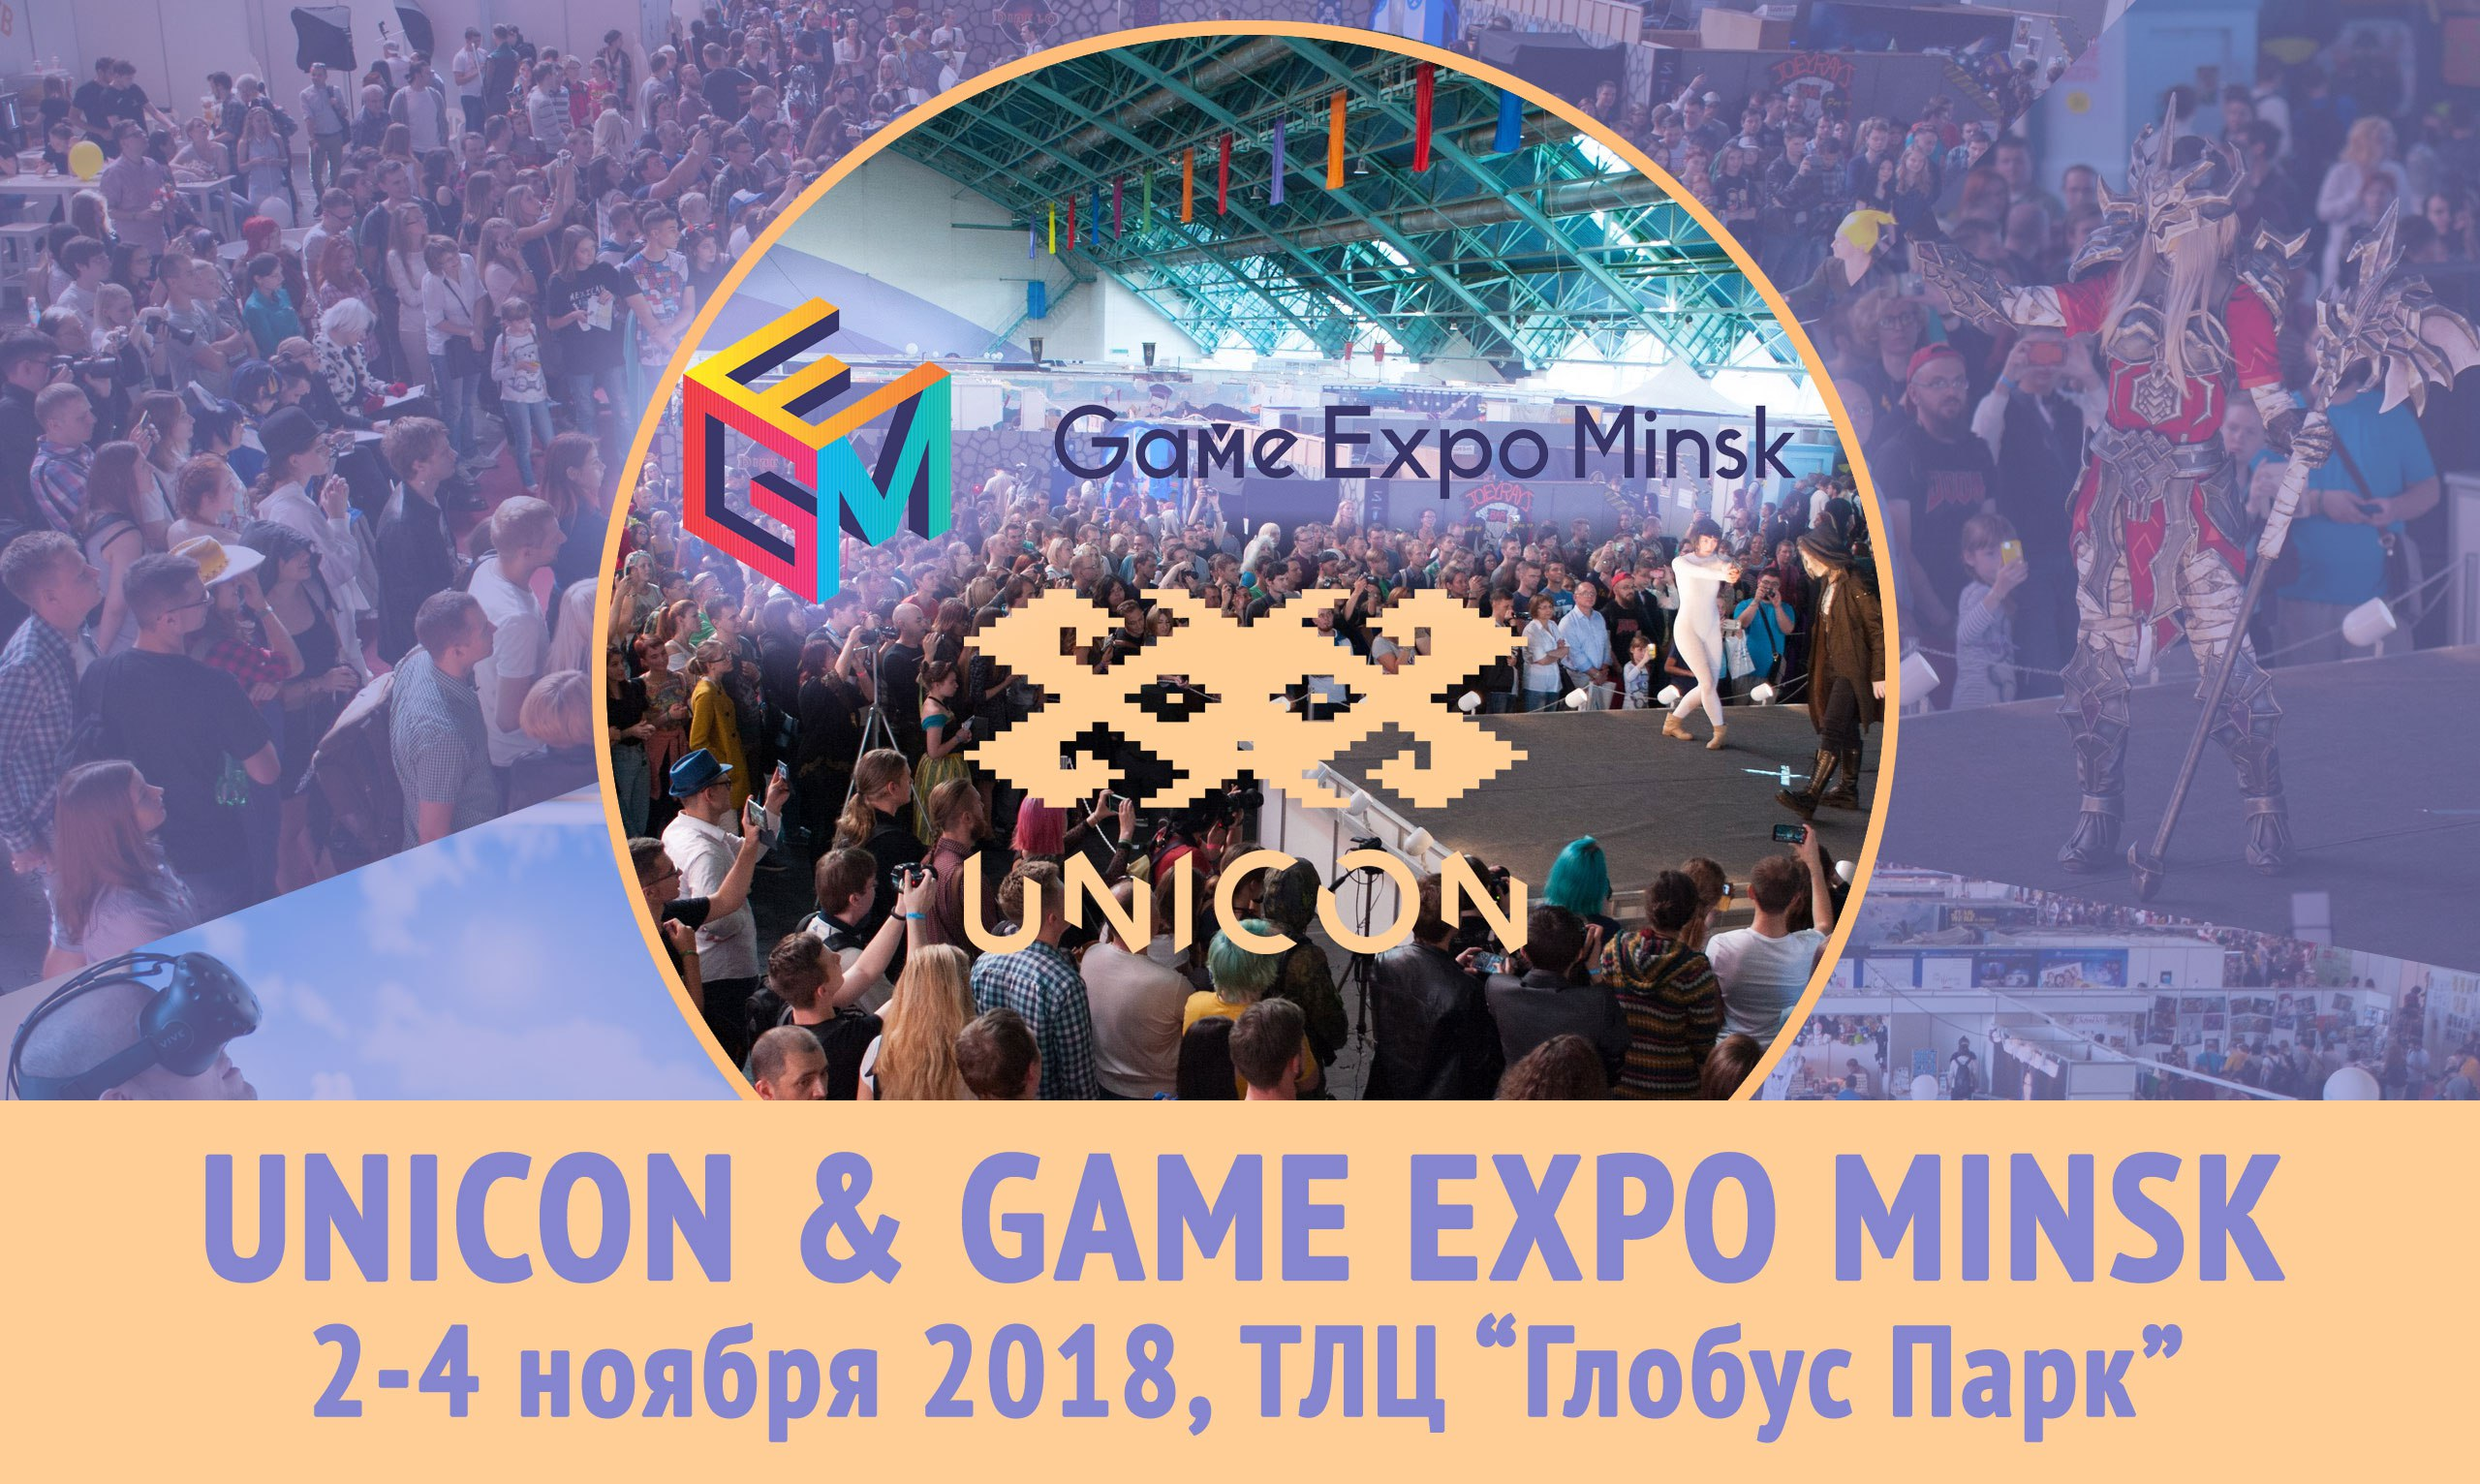 UNICON Convention & GameExpo Minsk 2018